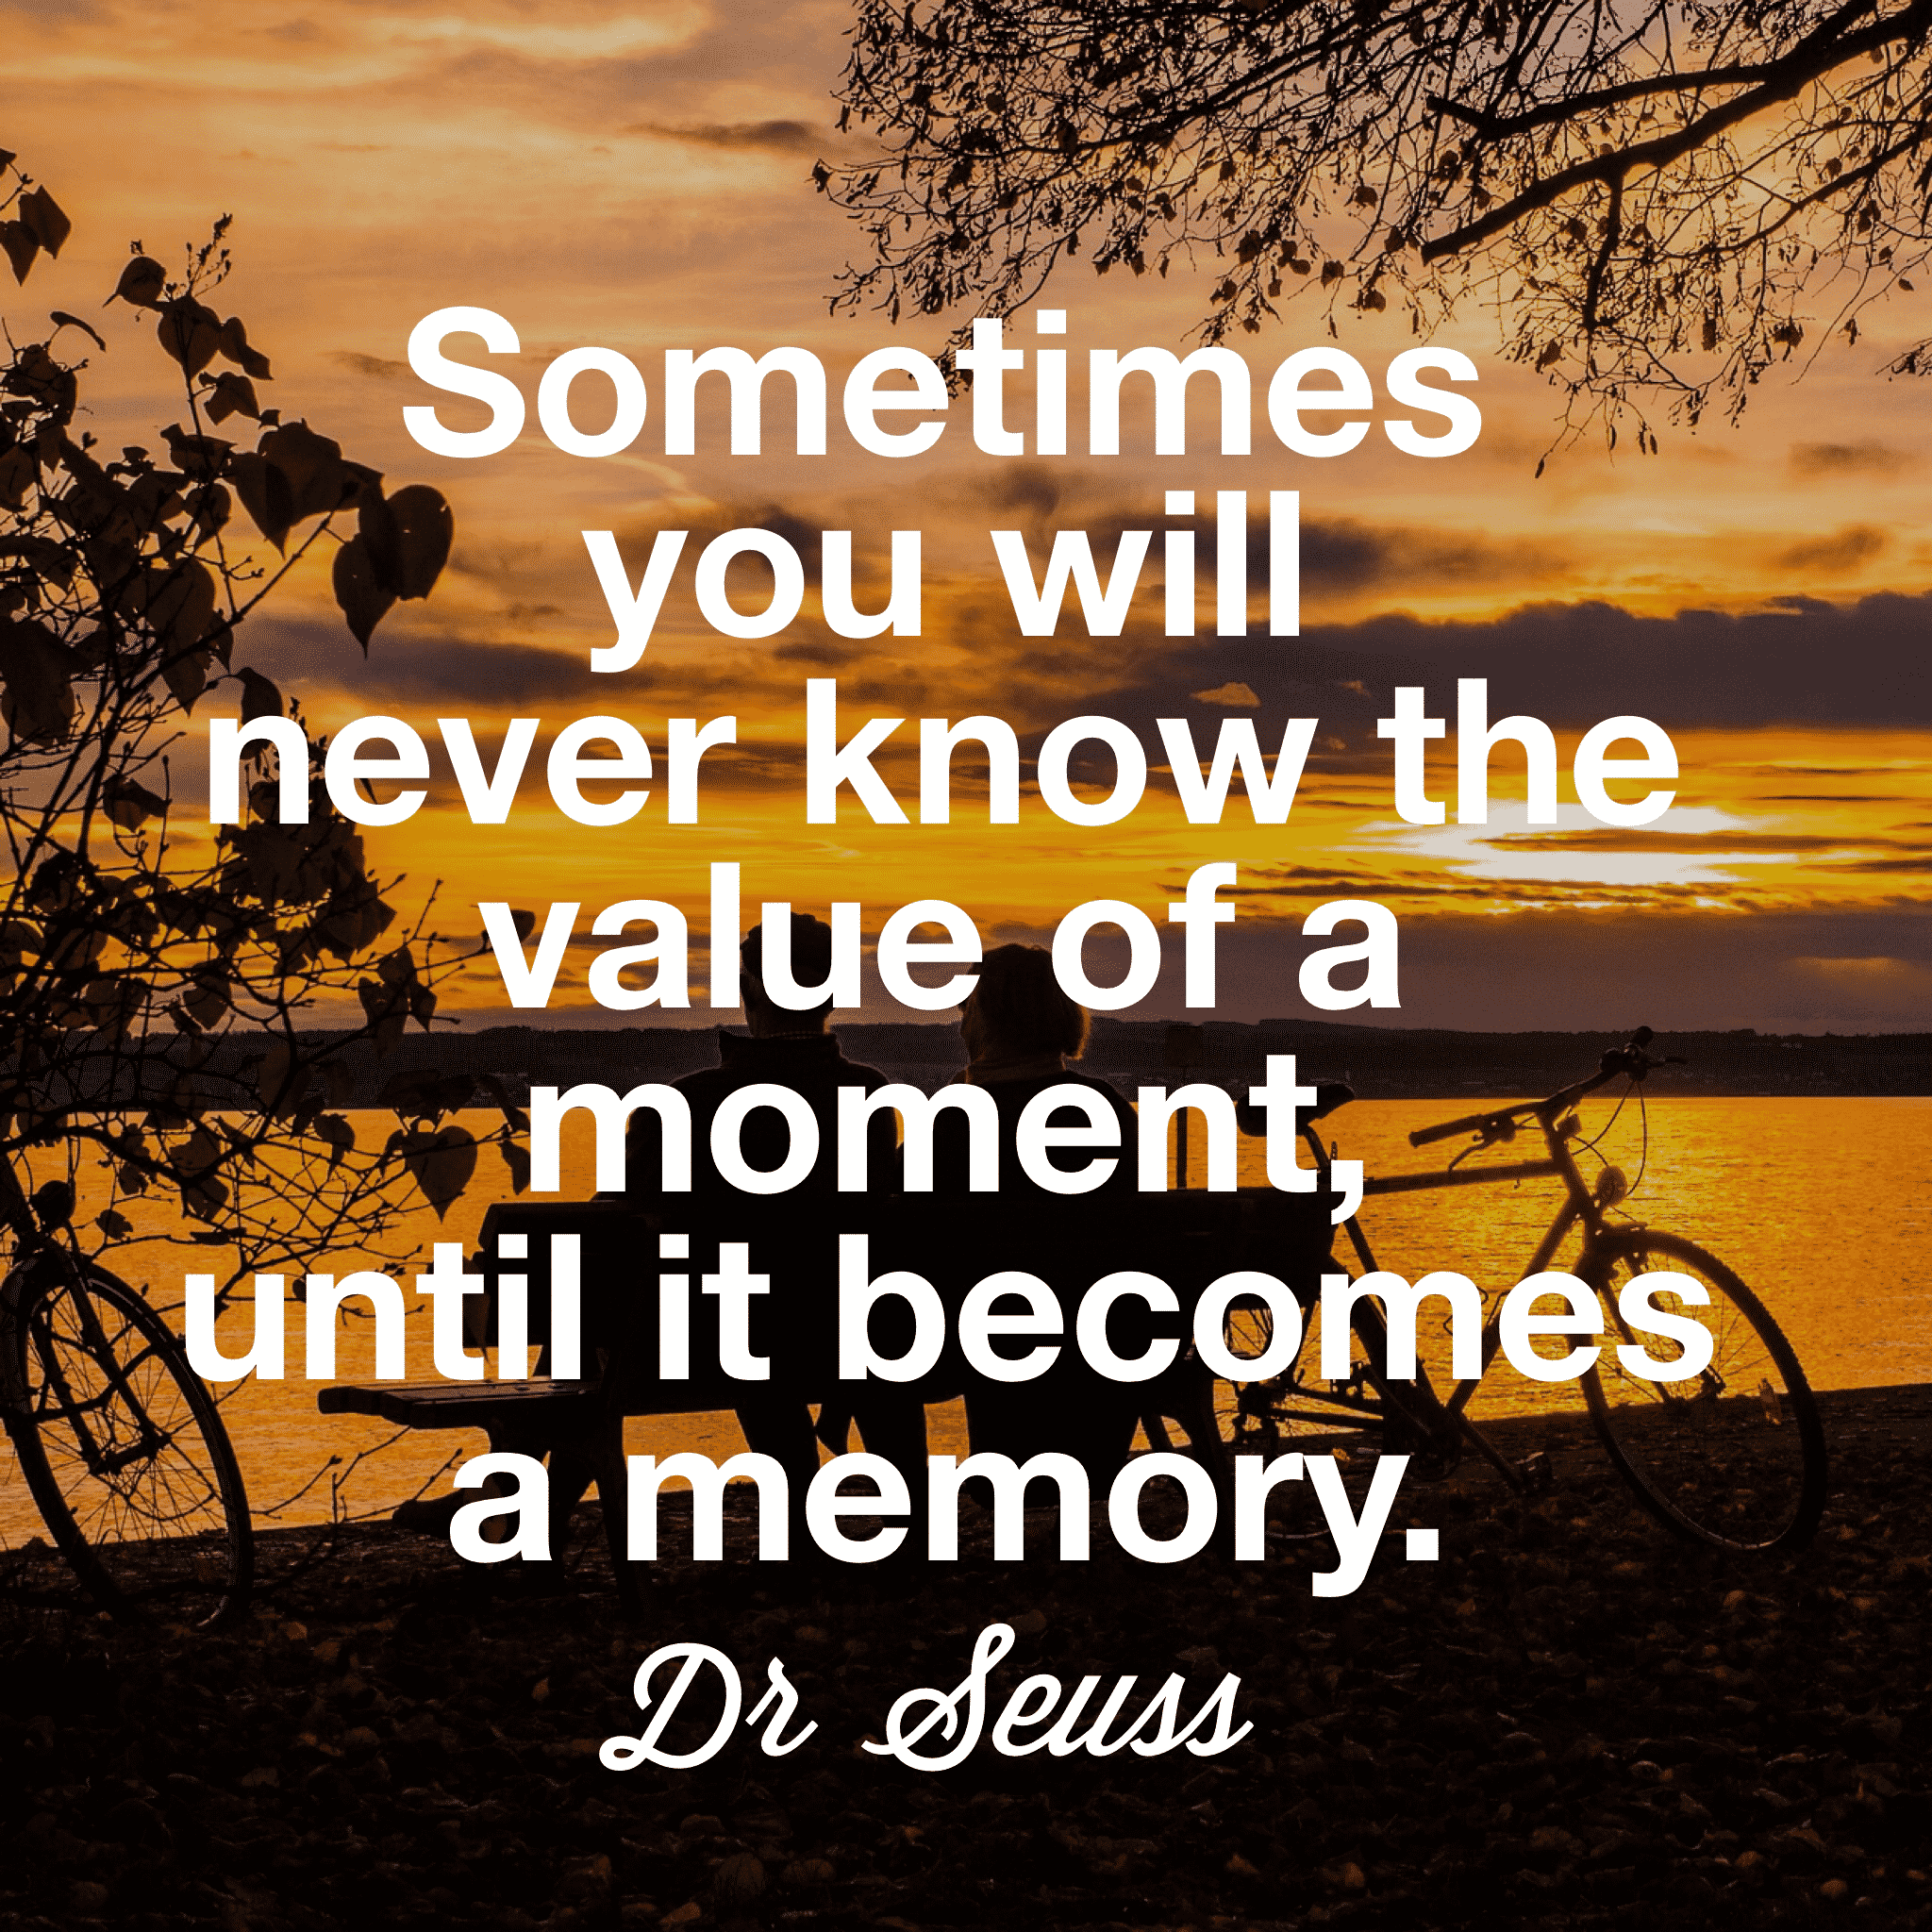 Dr Seuss Quotes About Love 20 Amazing Dr Seuss Quotes